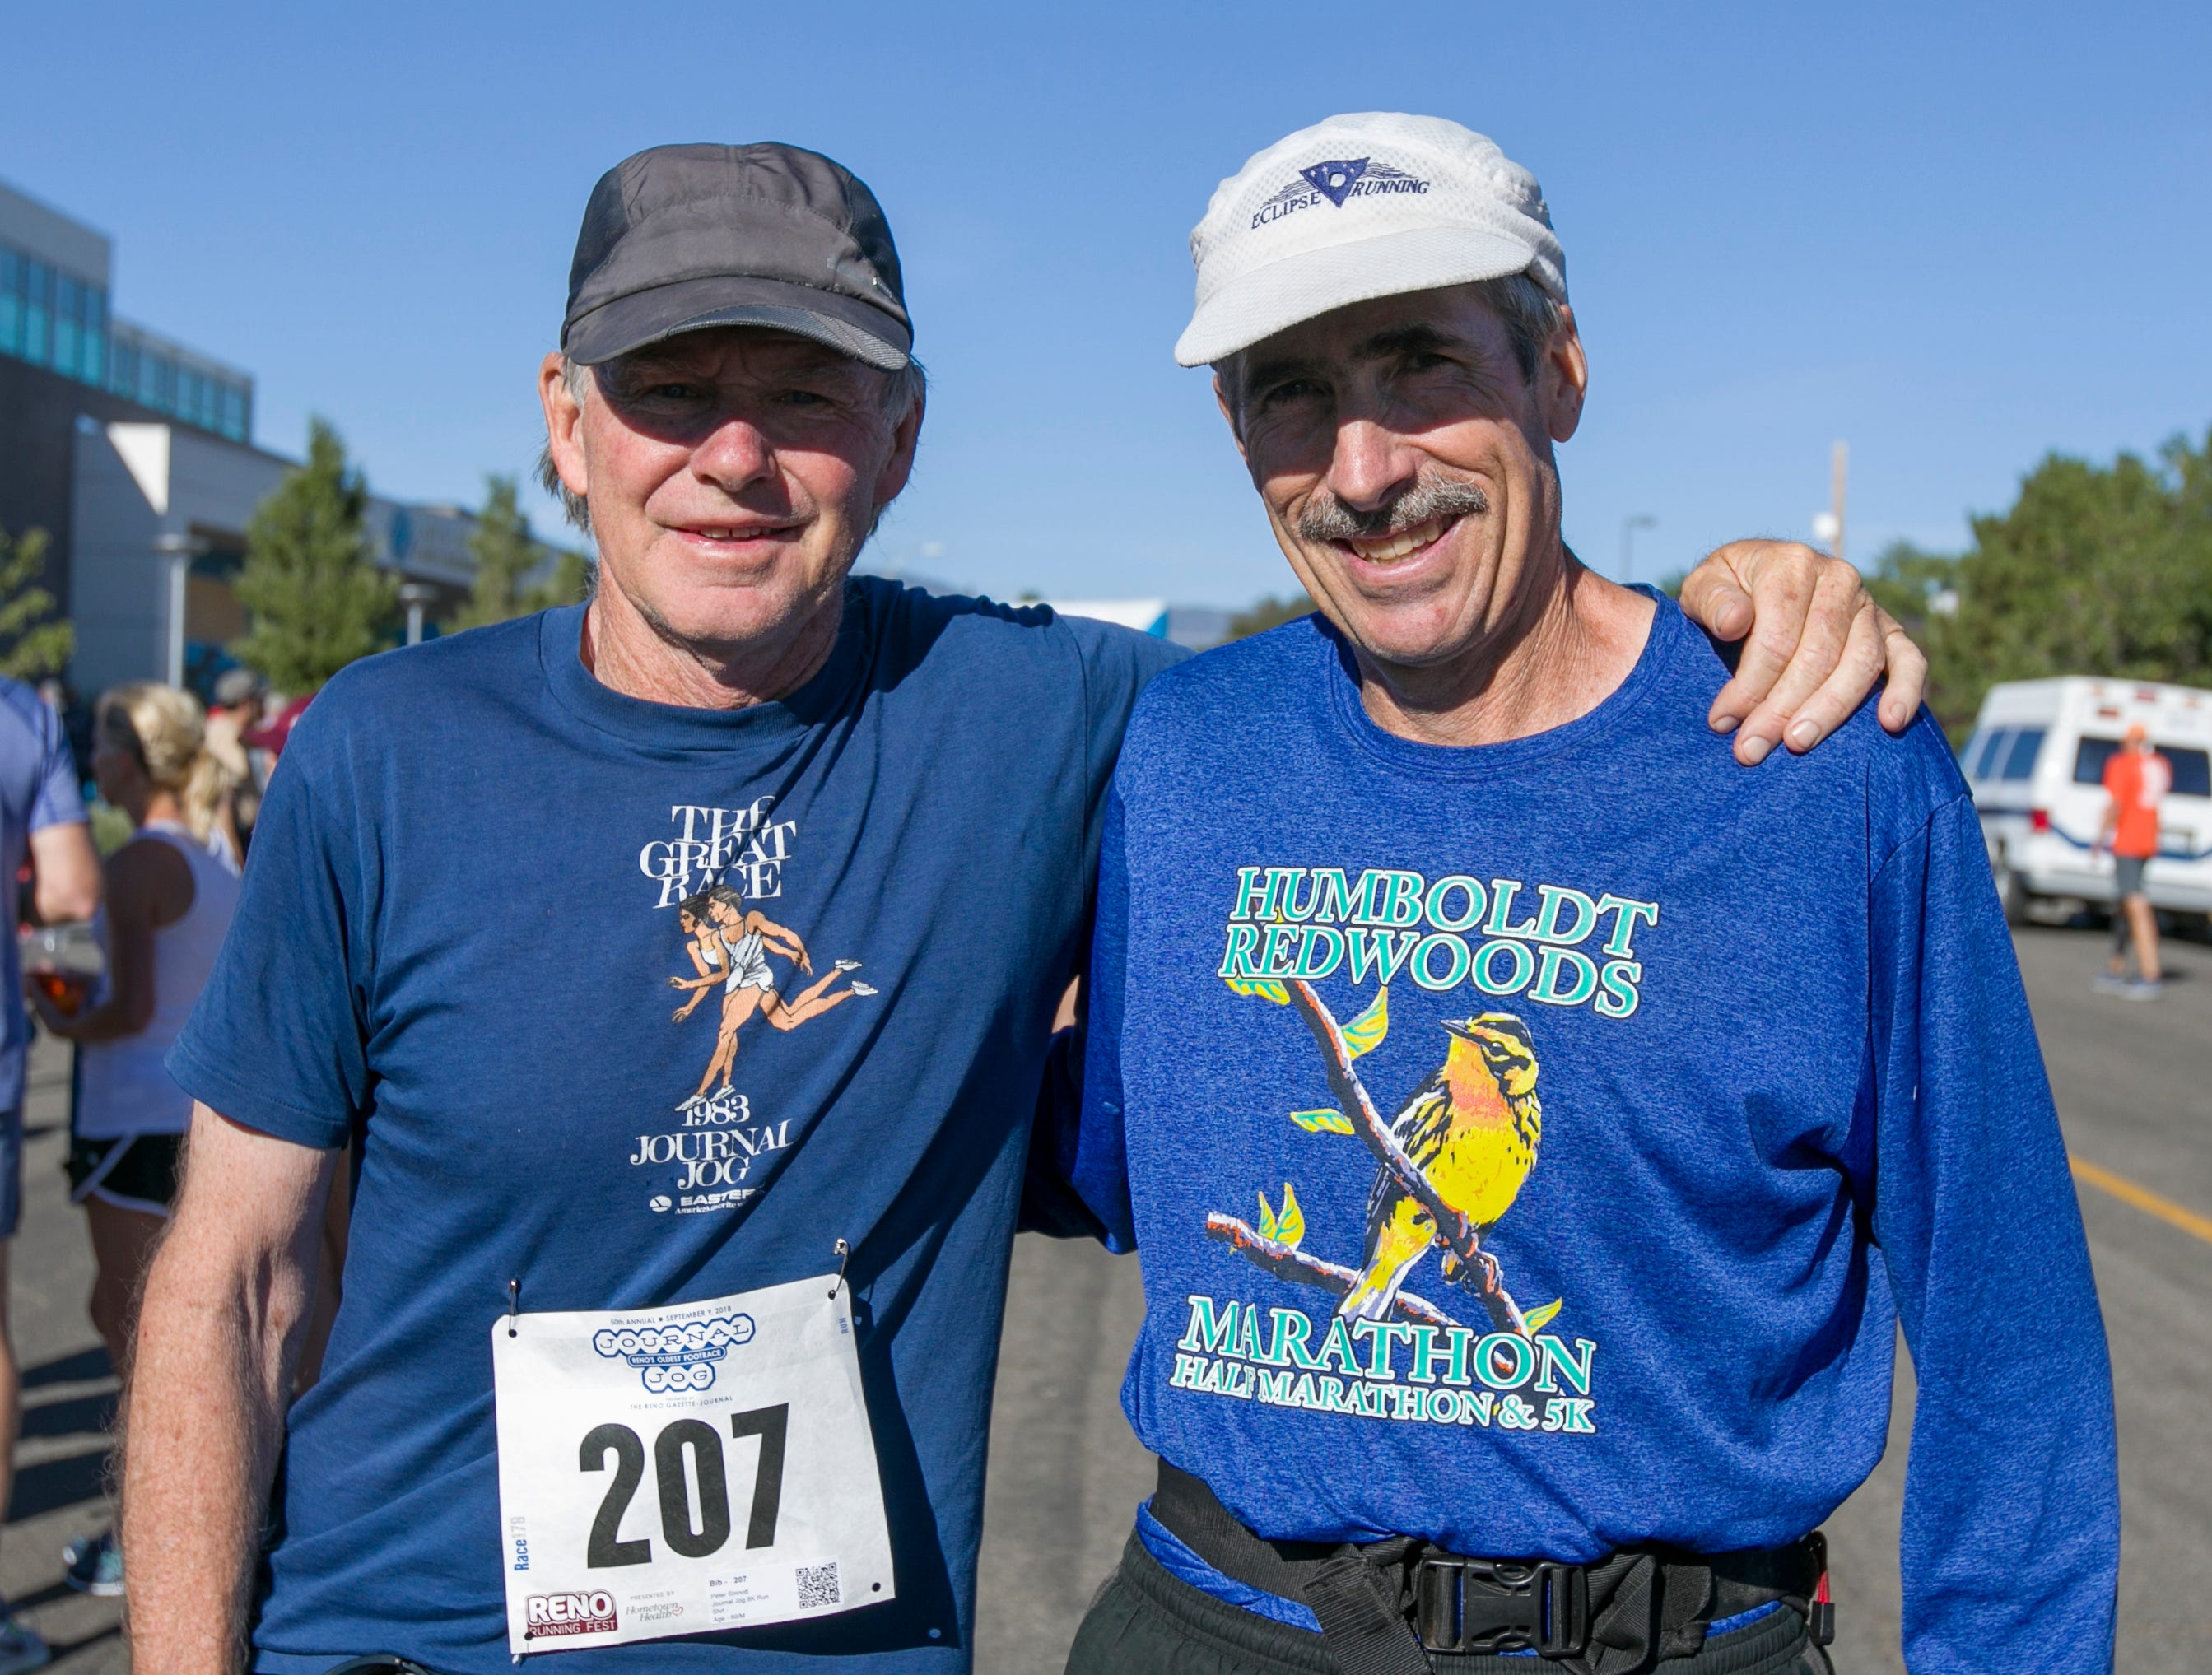 Pete Sinnott and Alan Dehlinger during the 50th Annual Journal Jog in Reno, Nevada on Sunday, September 9, 2018.